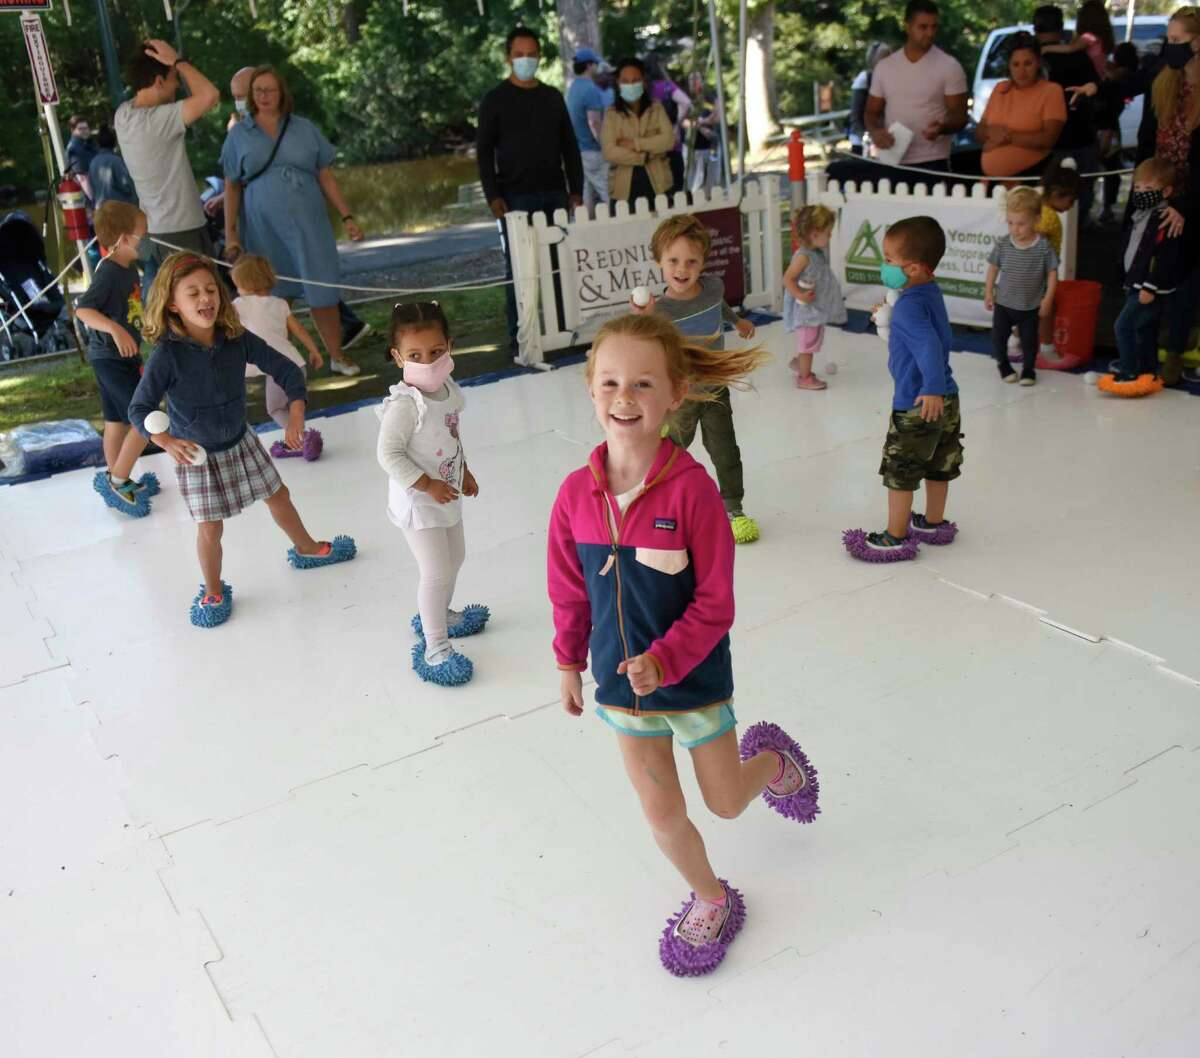 """Greenwich's Myla Scott, 6, """"skates"""" in the game zone at the first of three Fall Family Fest Sundays at the Stamford Museum & Nature Center in Stamford, Conn. Sunday, Sept. 26, 2021. To celebrate the season, the Museum & Nature Center held a mini festival with added attractions, enhanced programming, and fun offerings for the whole family. The event continues on Oct. 3 and Oct. 17."""